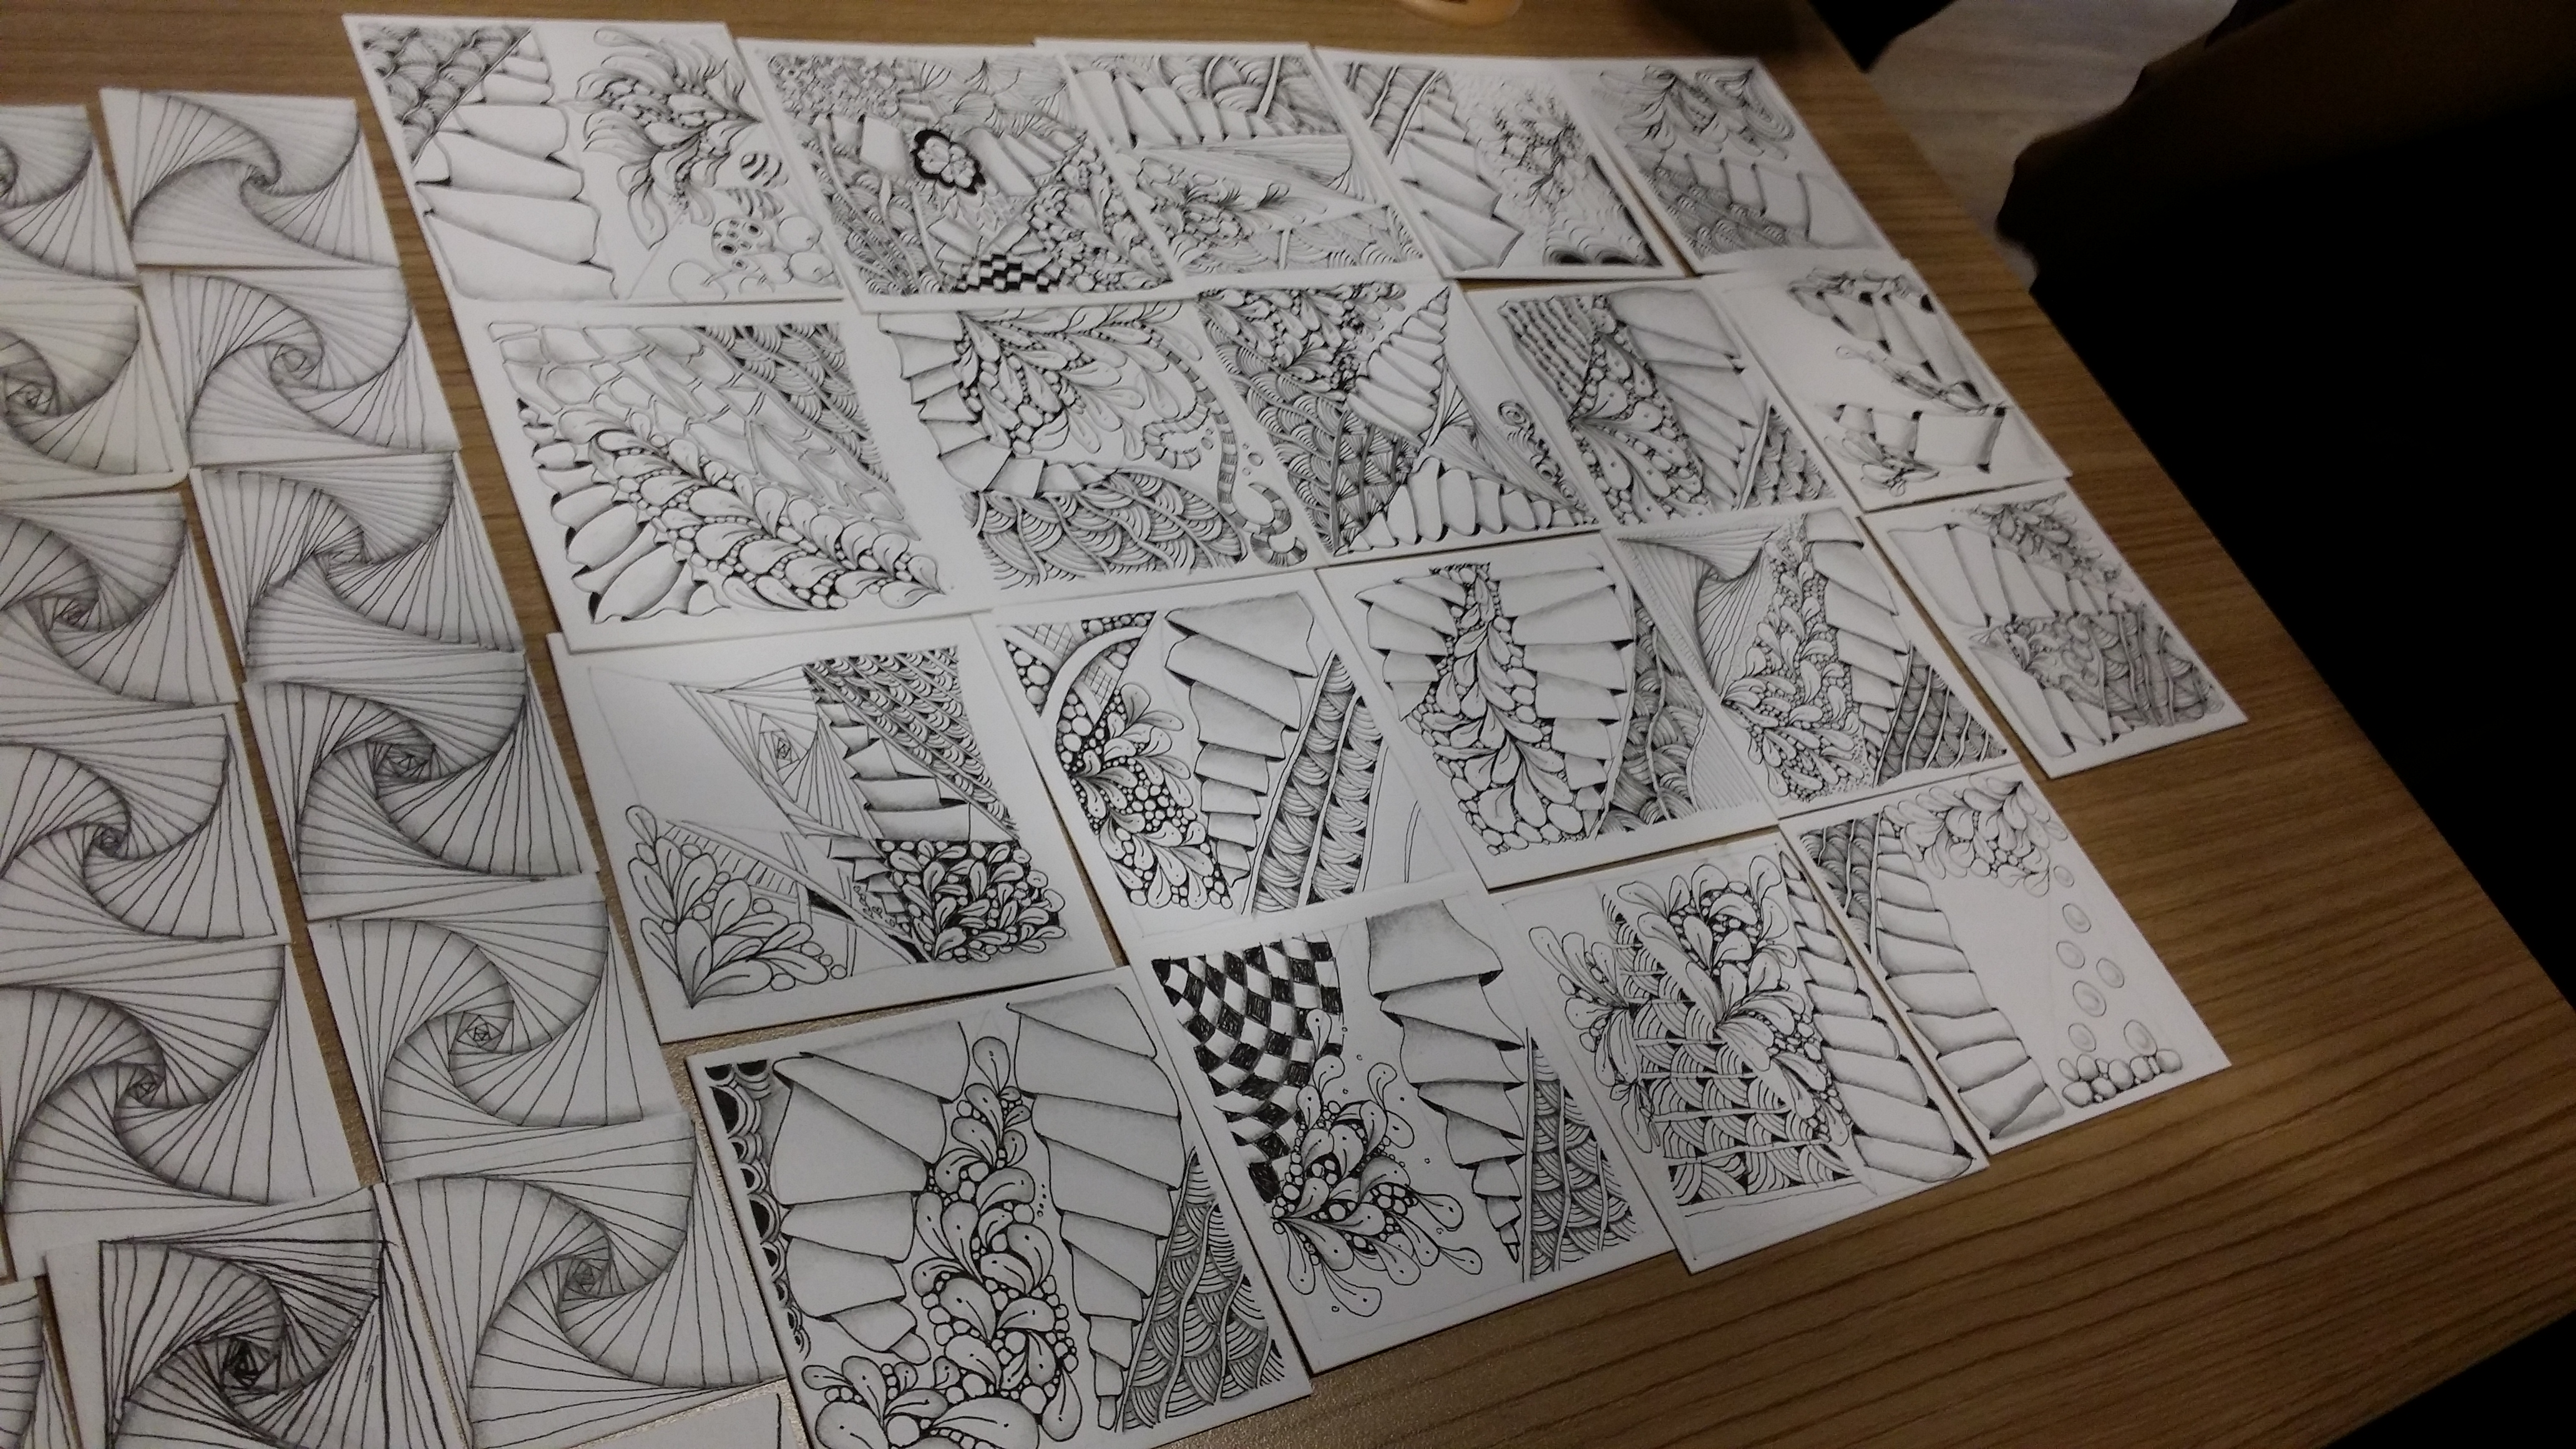 o.compile of student works